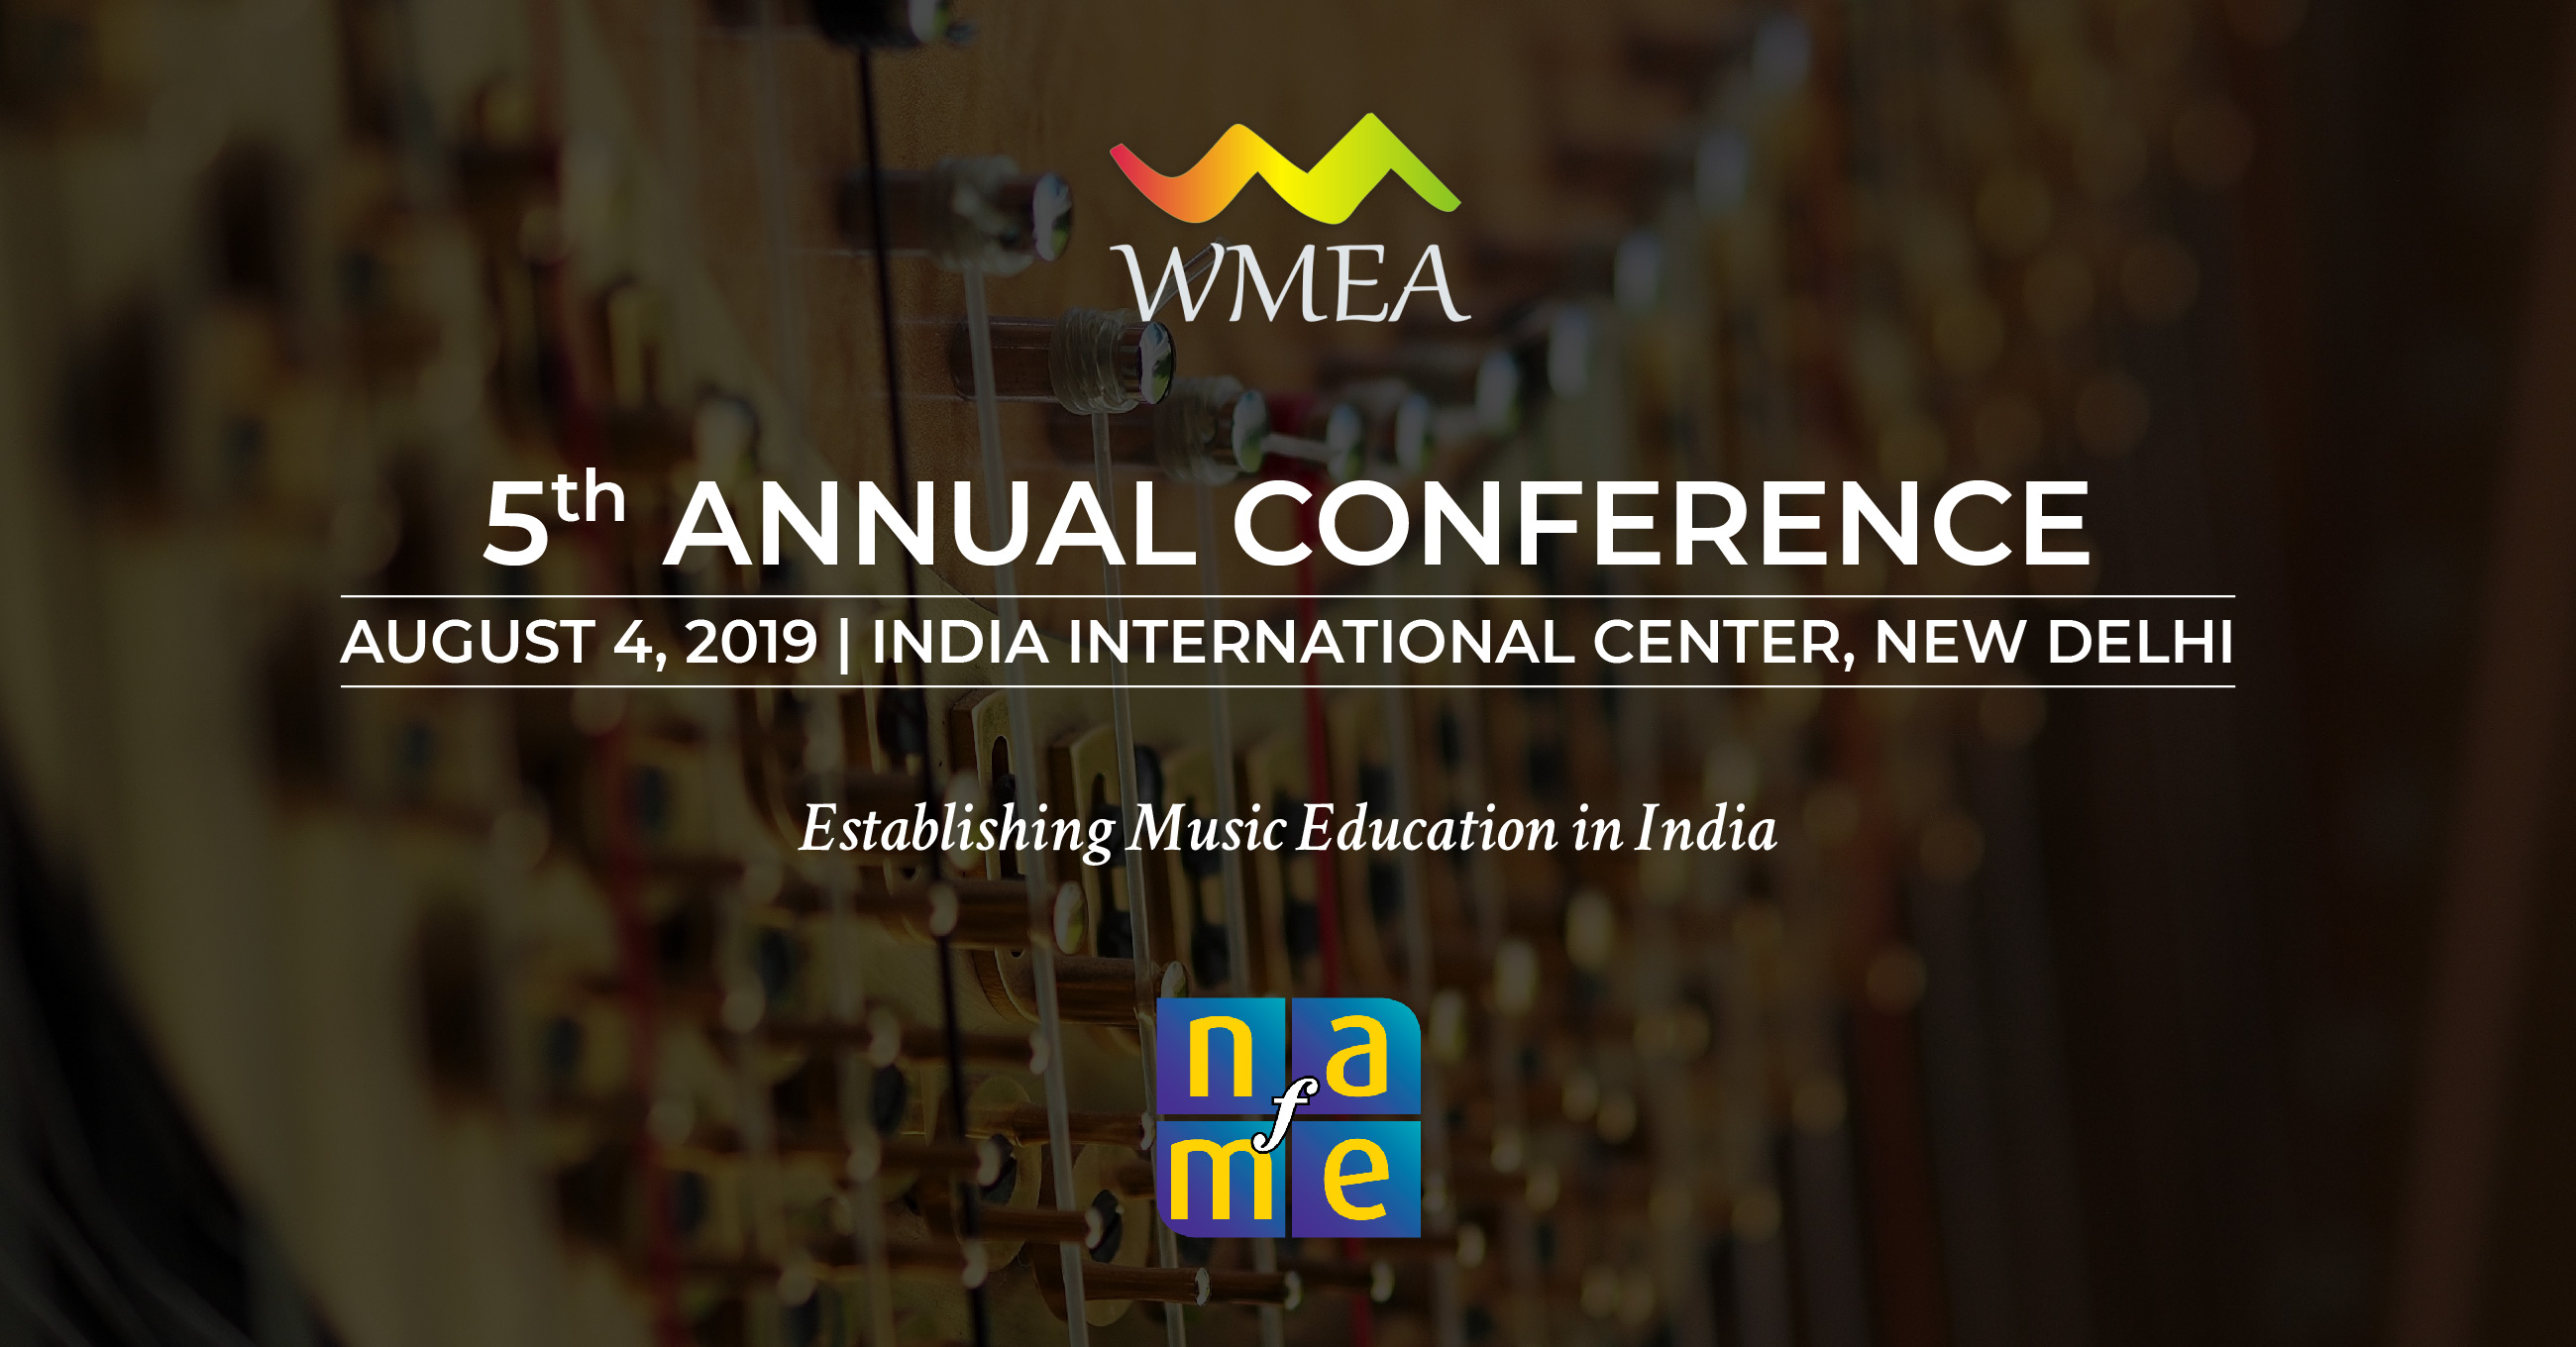 Annual Conference 2019 | WMEA India - Western Music Education